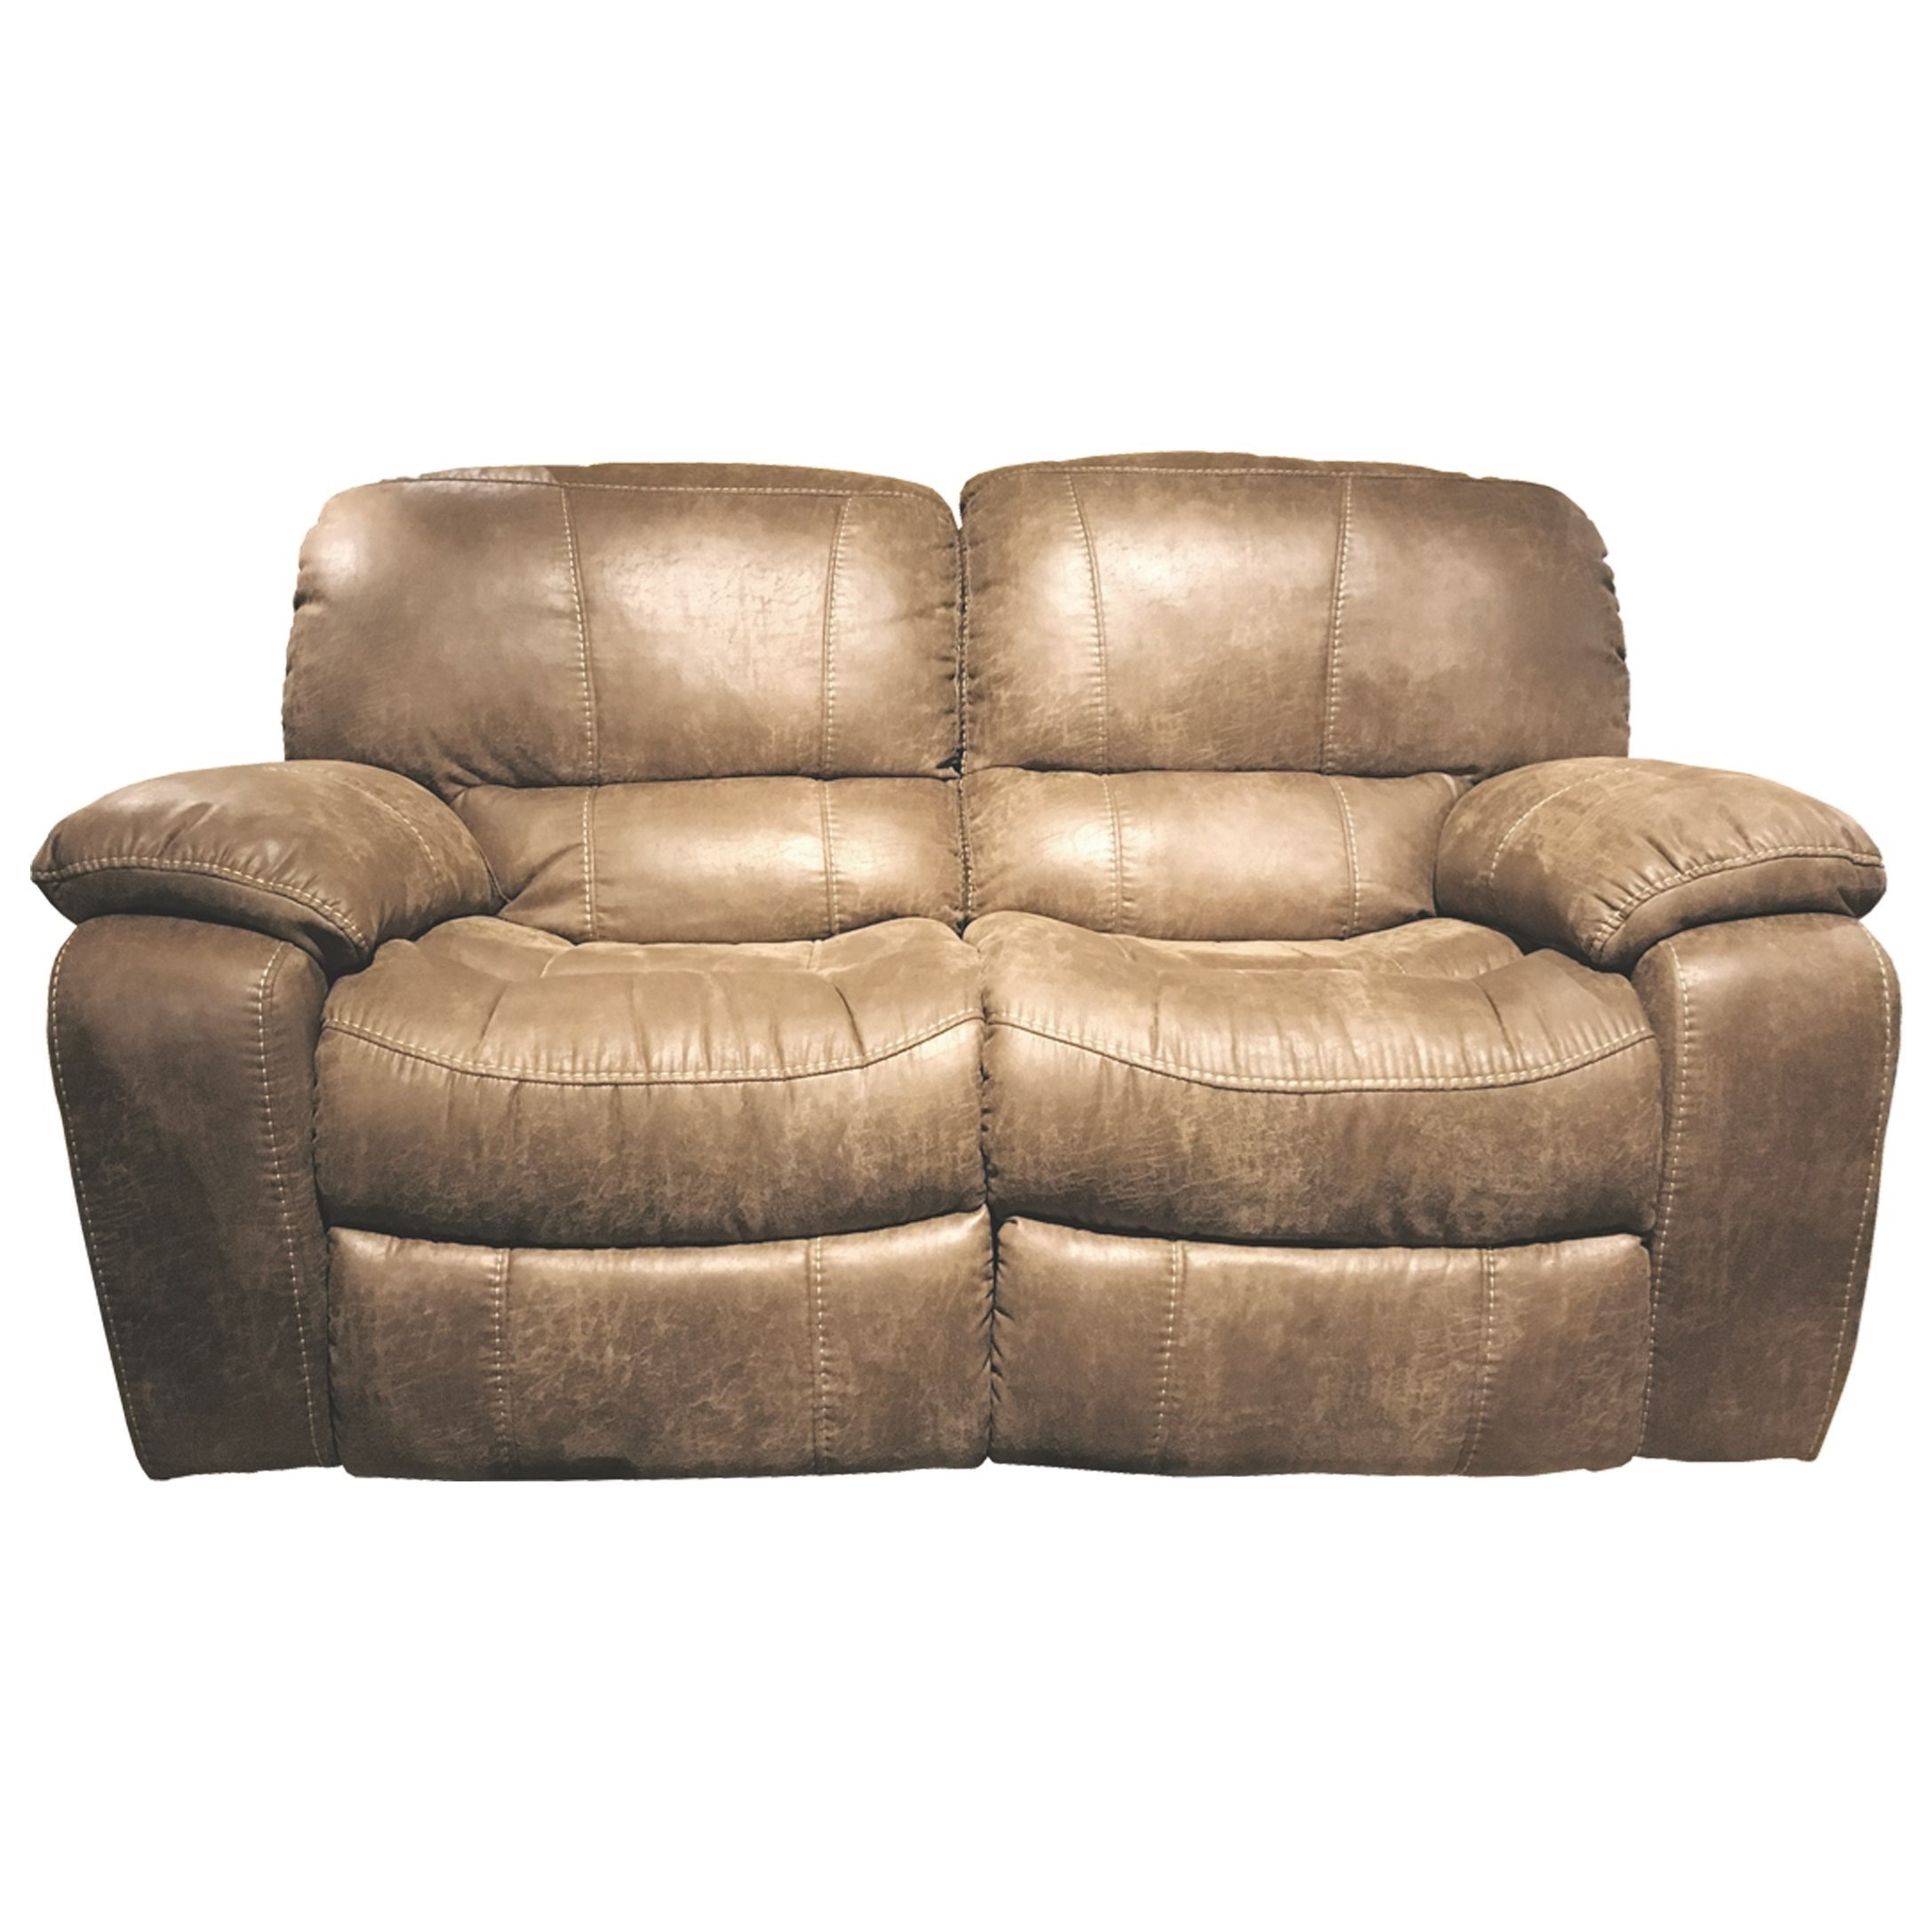 dual reclining love seat with pillow arms at sadler s home furnishings